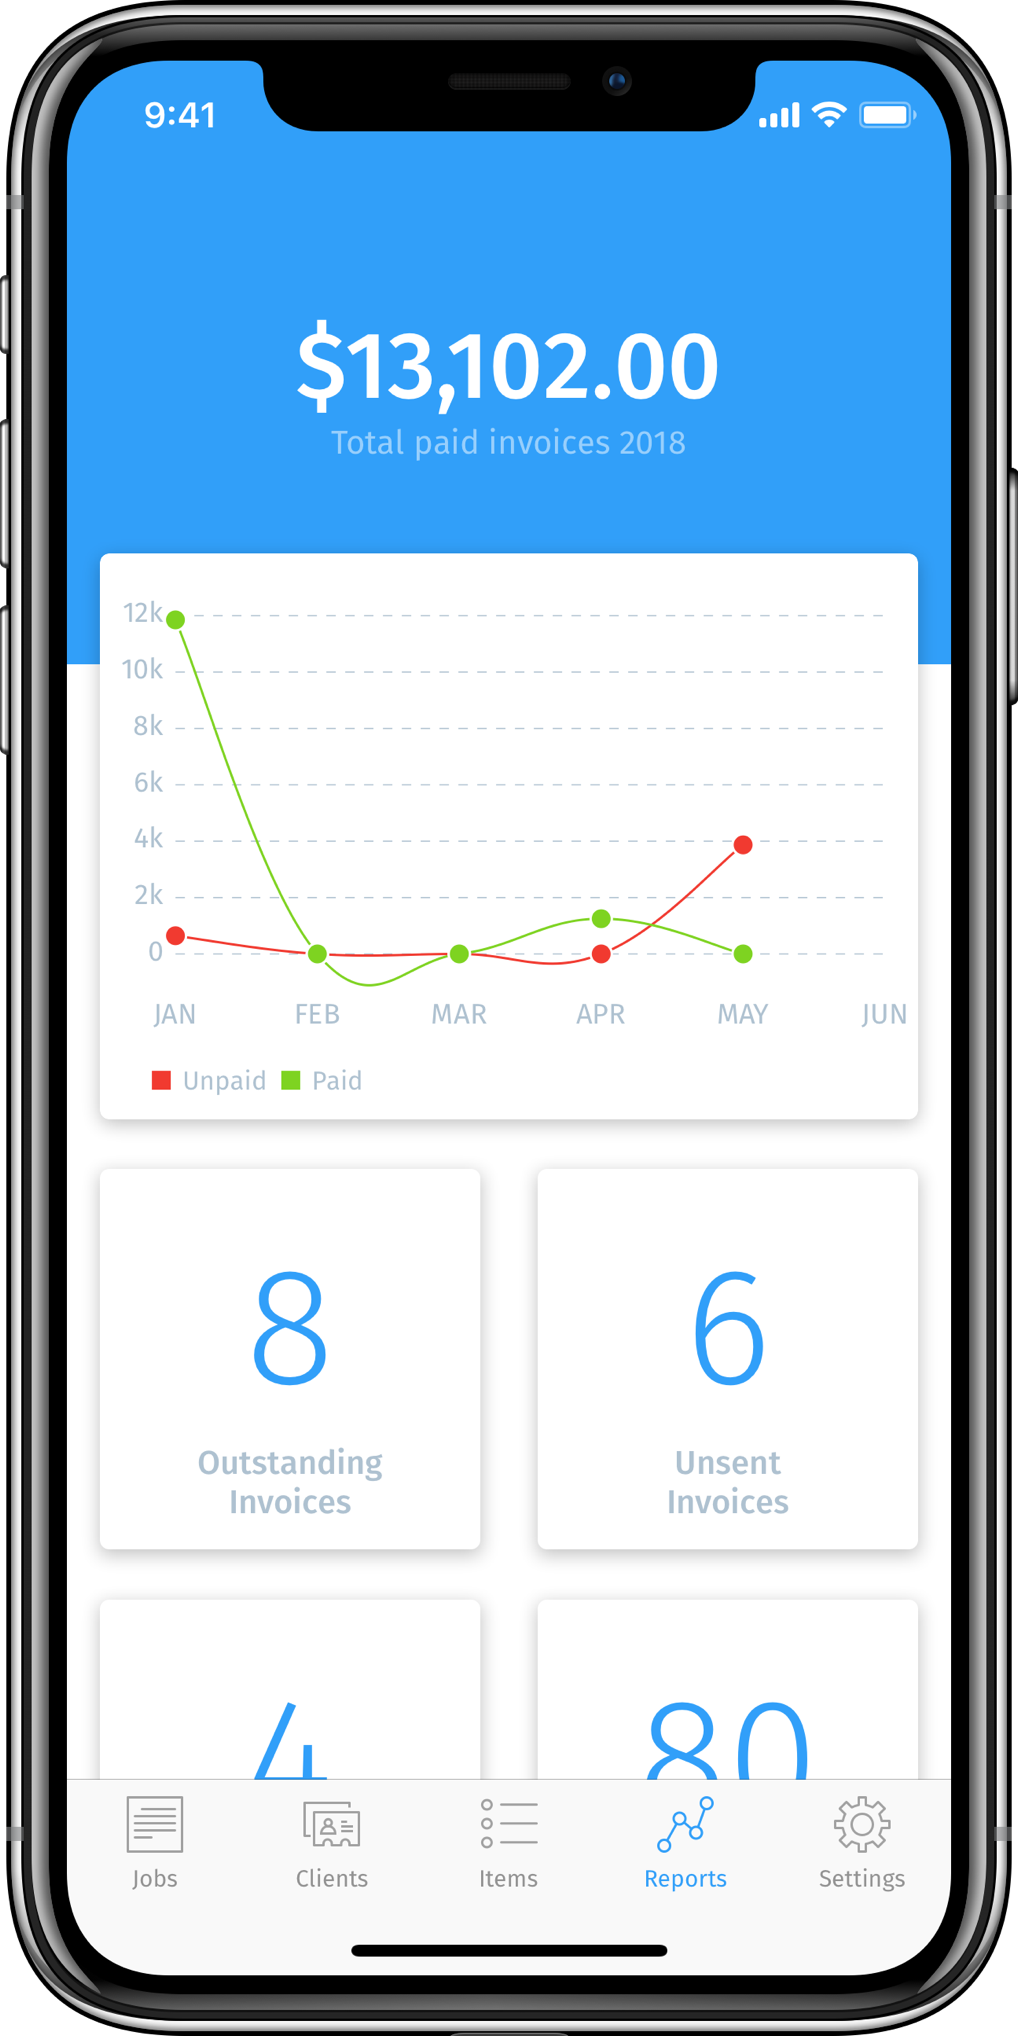 iPhone frame showing the InvoiceBot dashboard